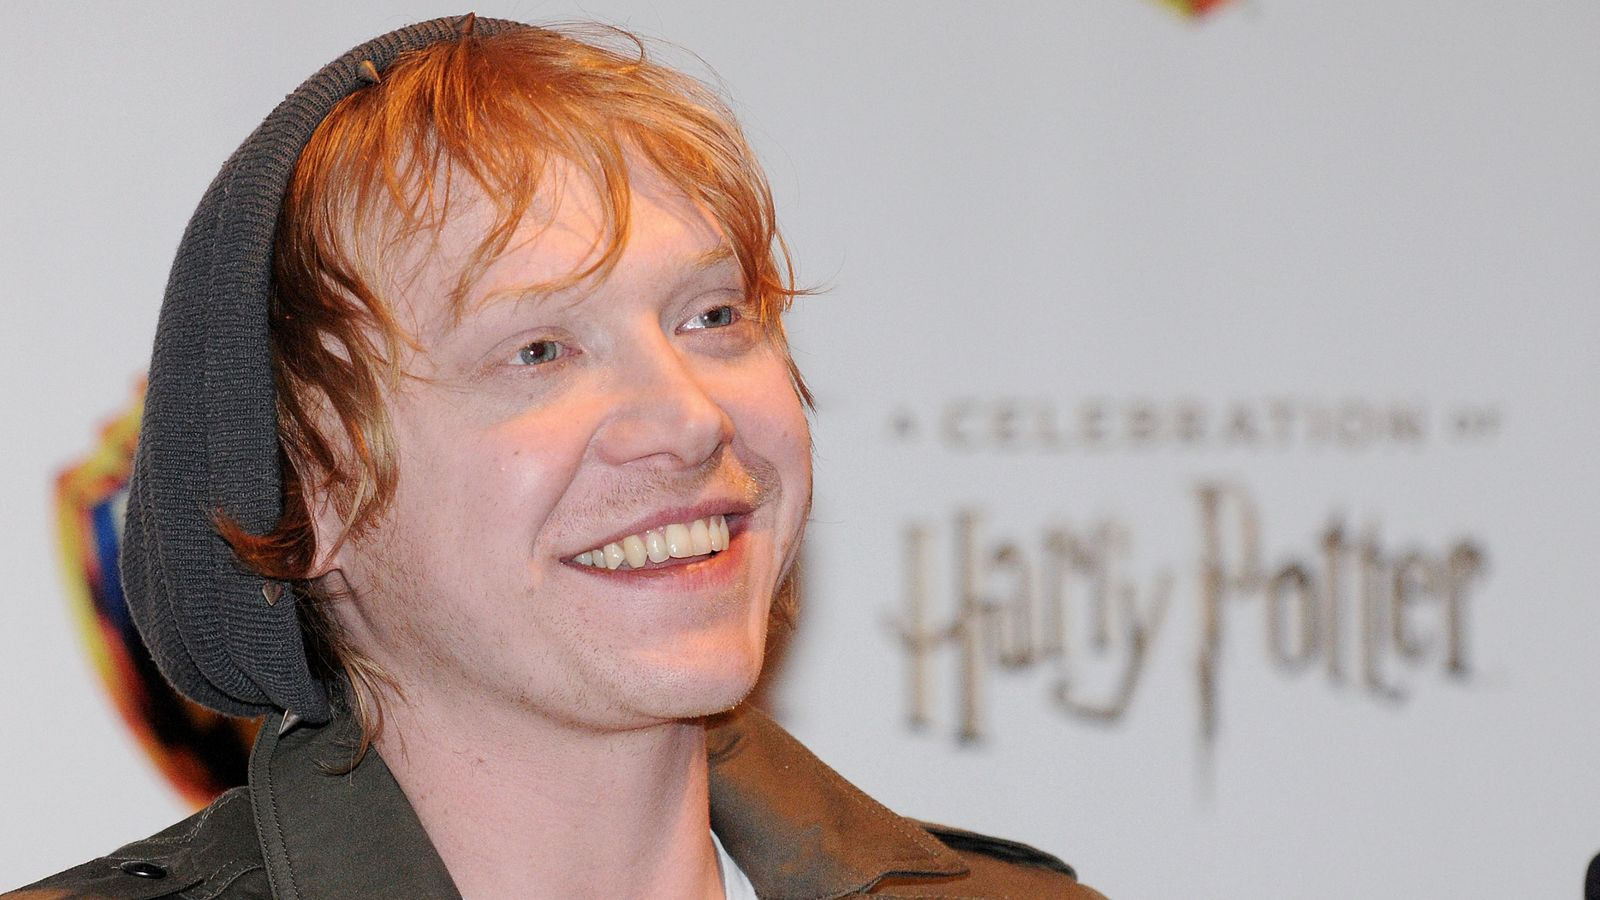 'Sometimes I just want to go to B&Q' says '£28m' Rupert Grint